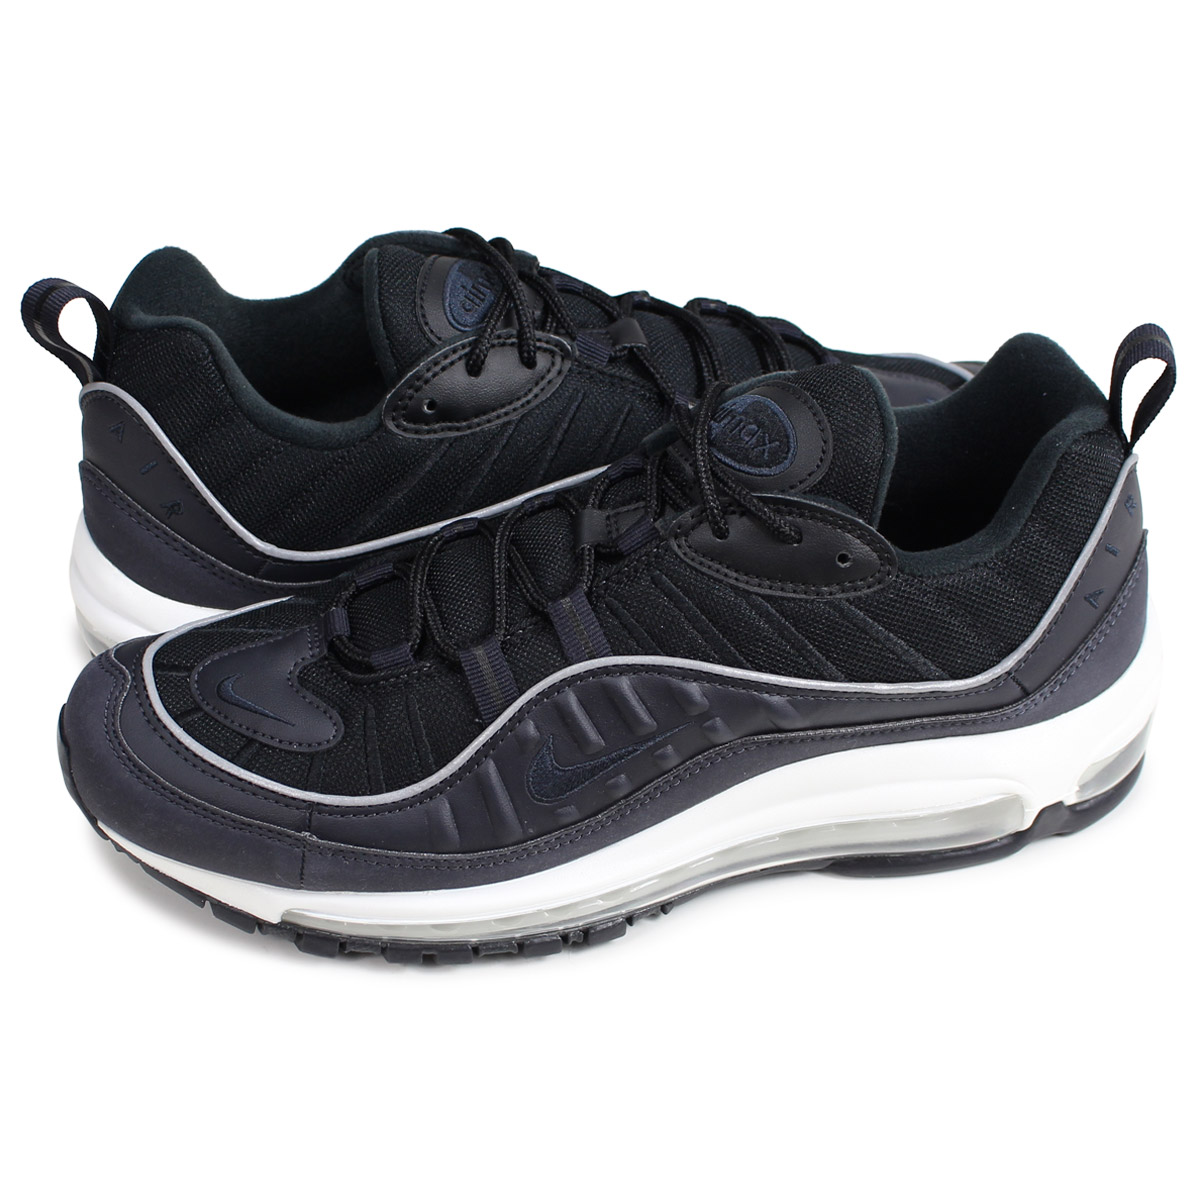 sports shoes ee470 1e579 Nike NIKE Air Max 98 sneakers men AIR MAX 98 black 640,744-009  192